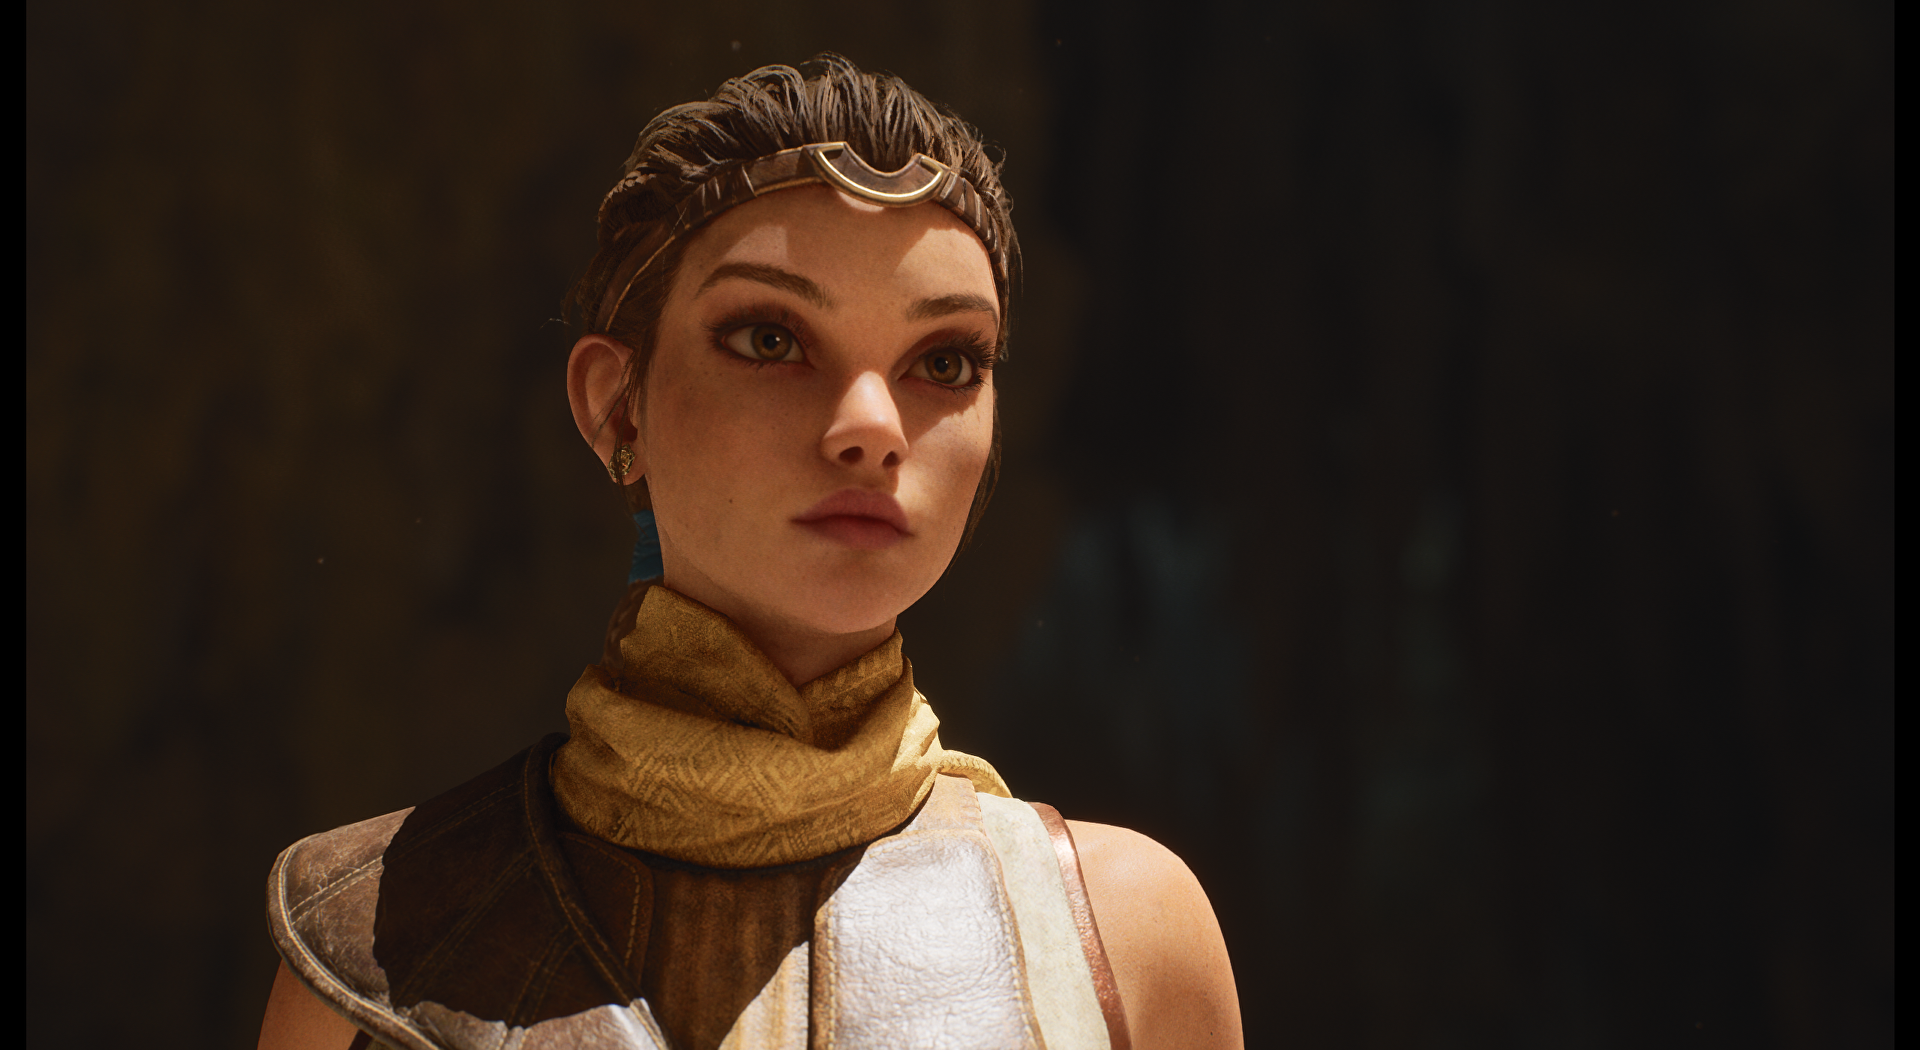 Epic Games has announced a new engine - Unreal Engine 5 6